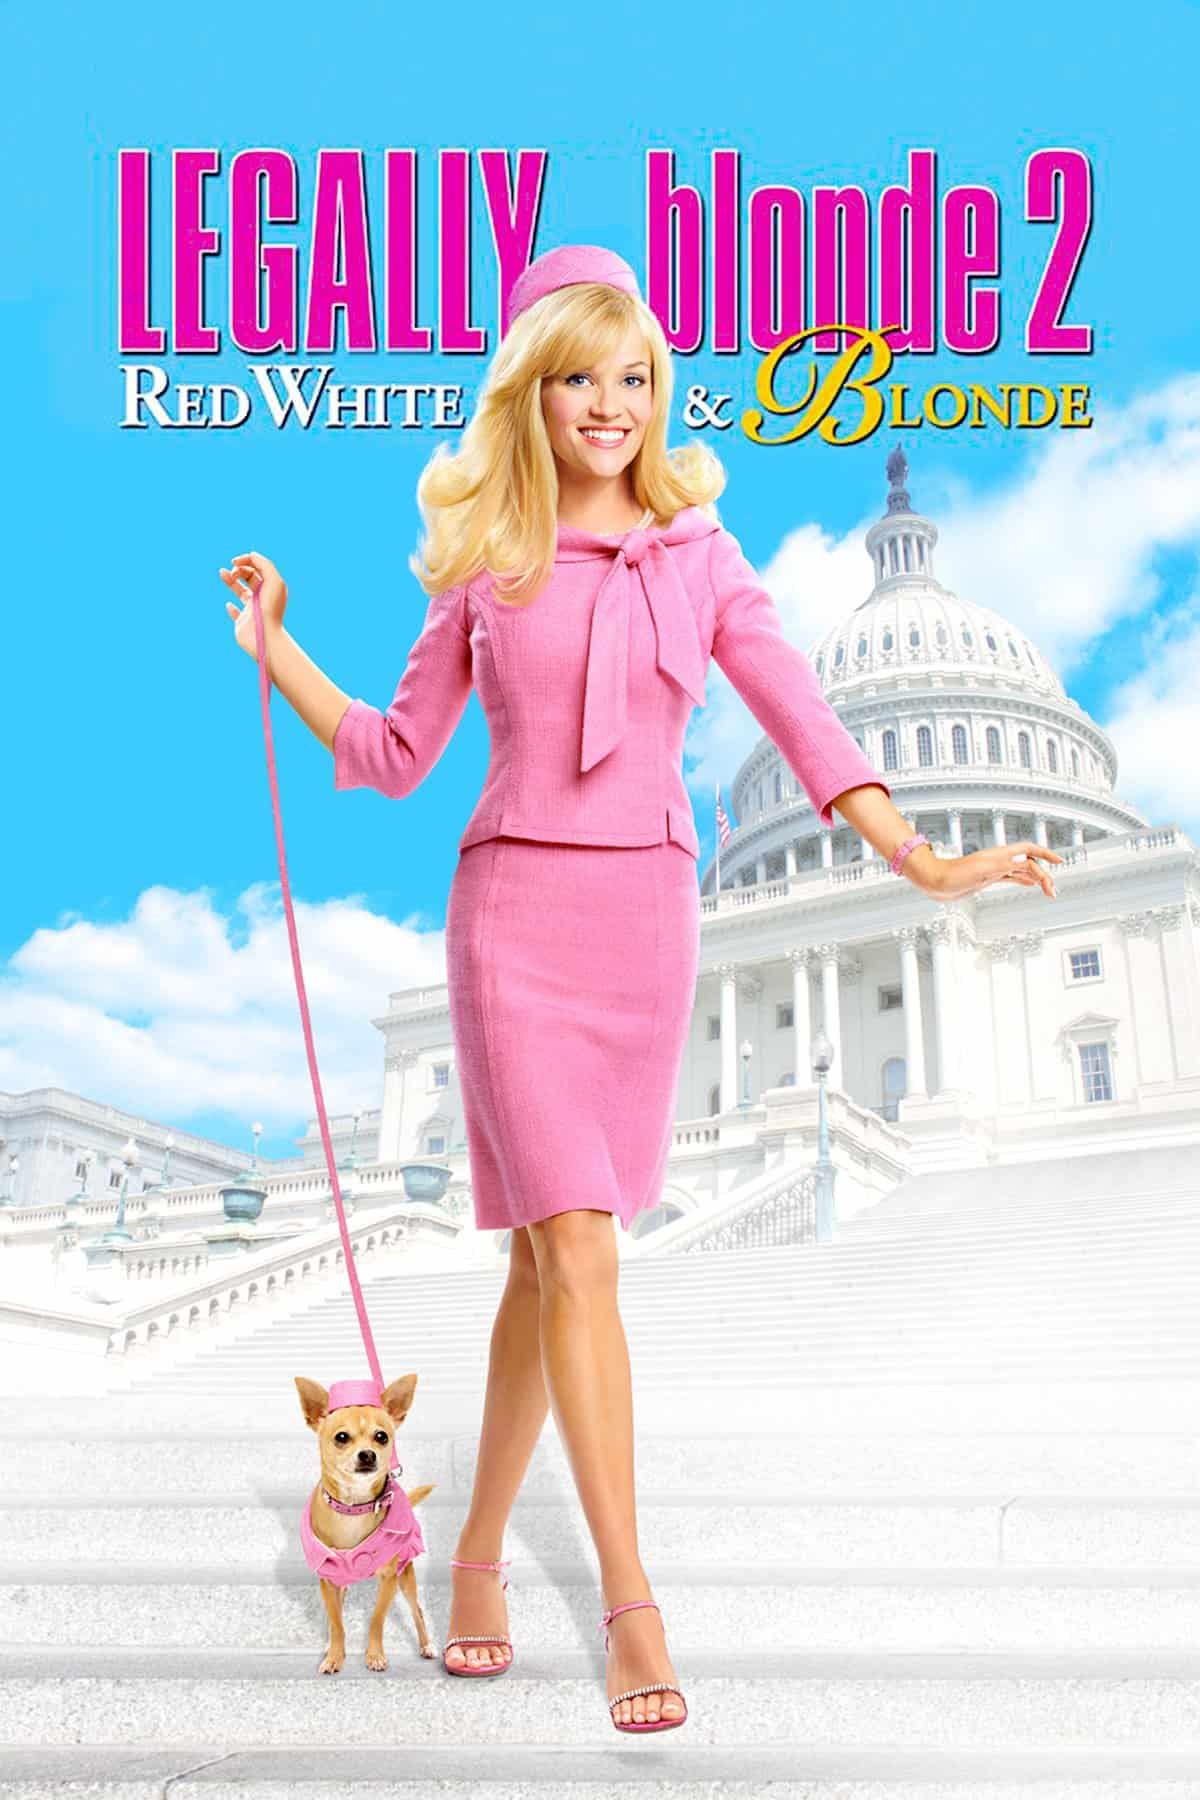 Legally Blonde 2: Red, White and Blonde, 2003